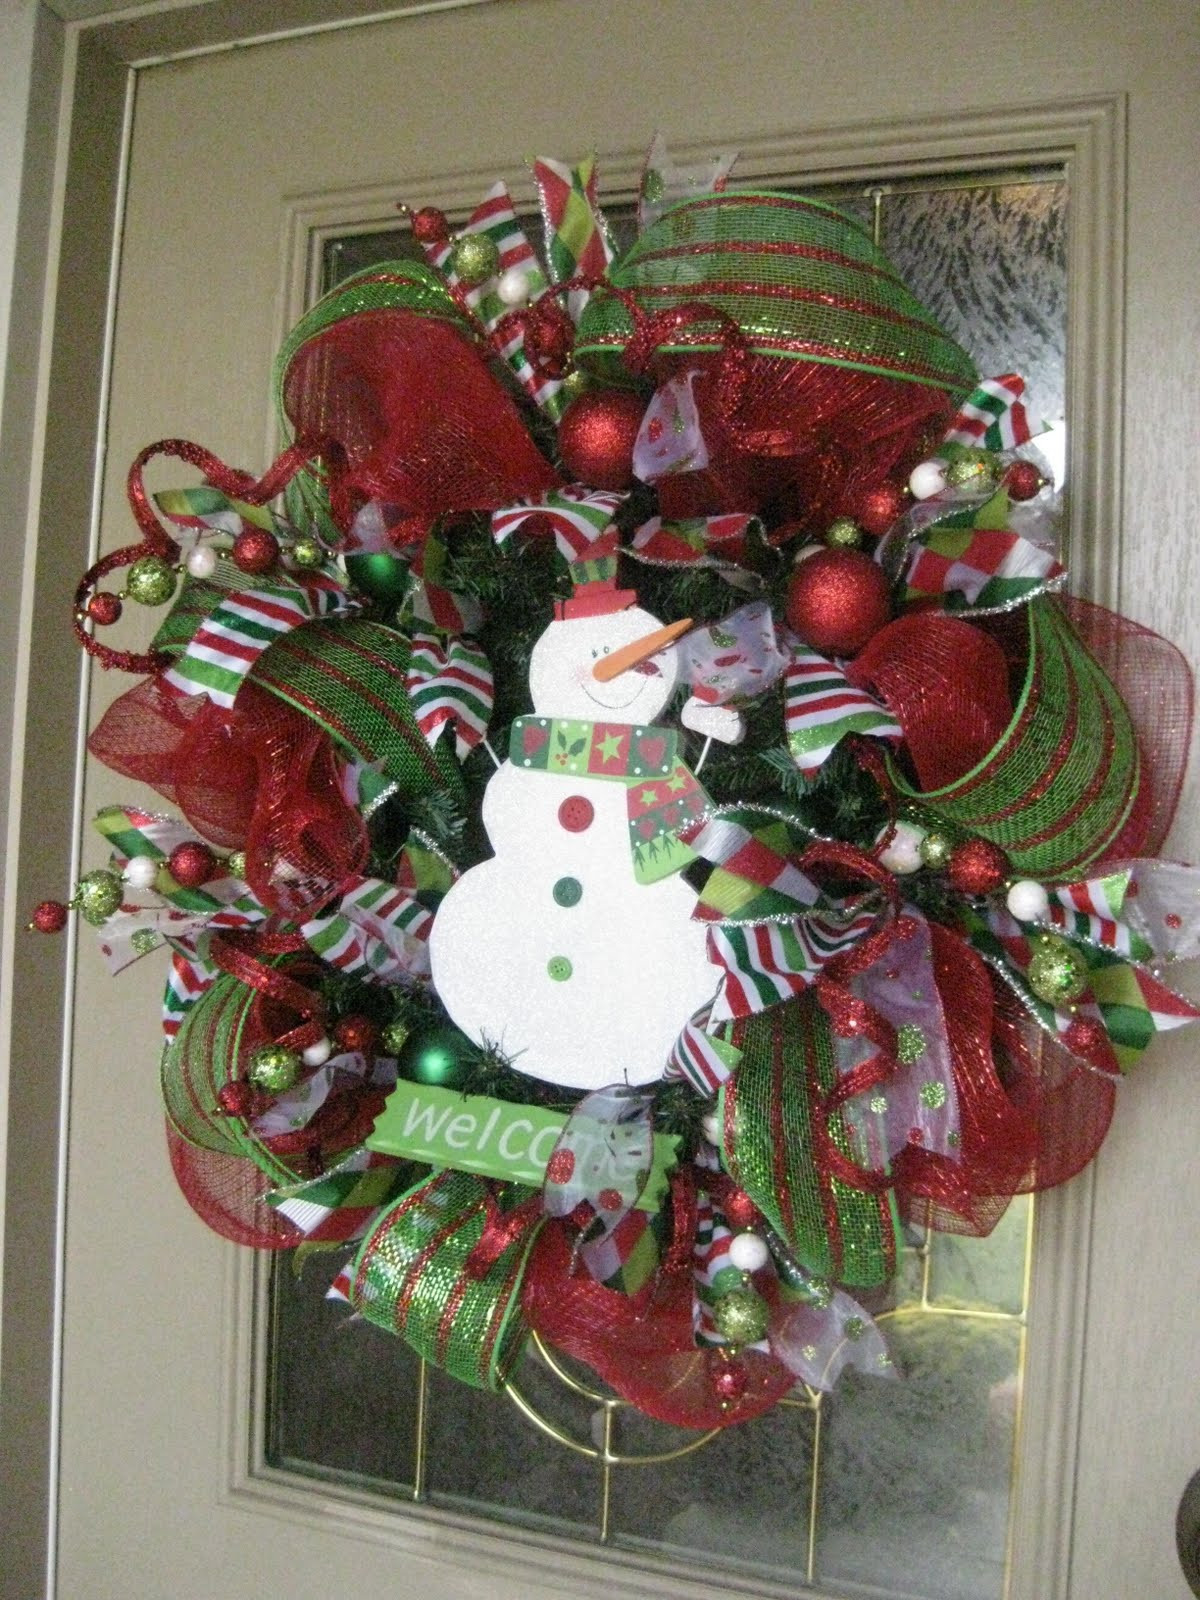 Best ideas about DIY Mesh Christmas Wreath . Save or Pin Kristen s Creations Christmas Mesh Wreath Tutorial Now.